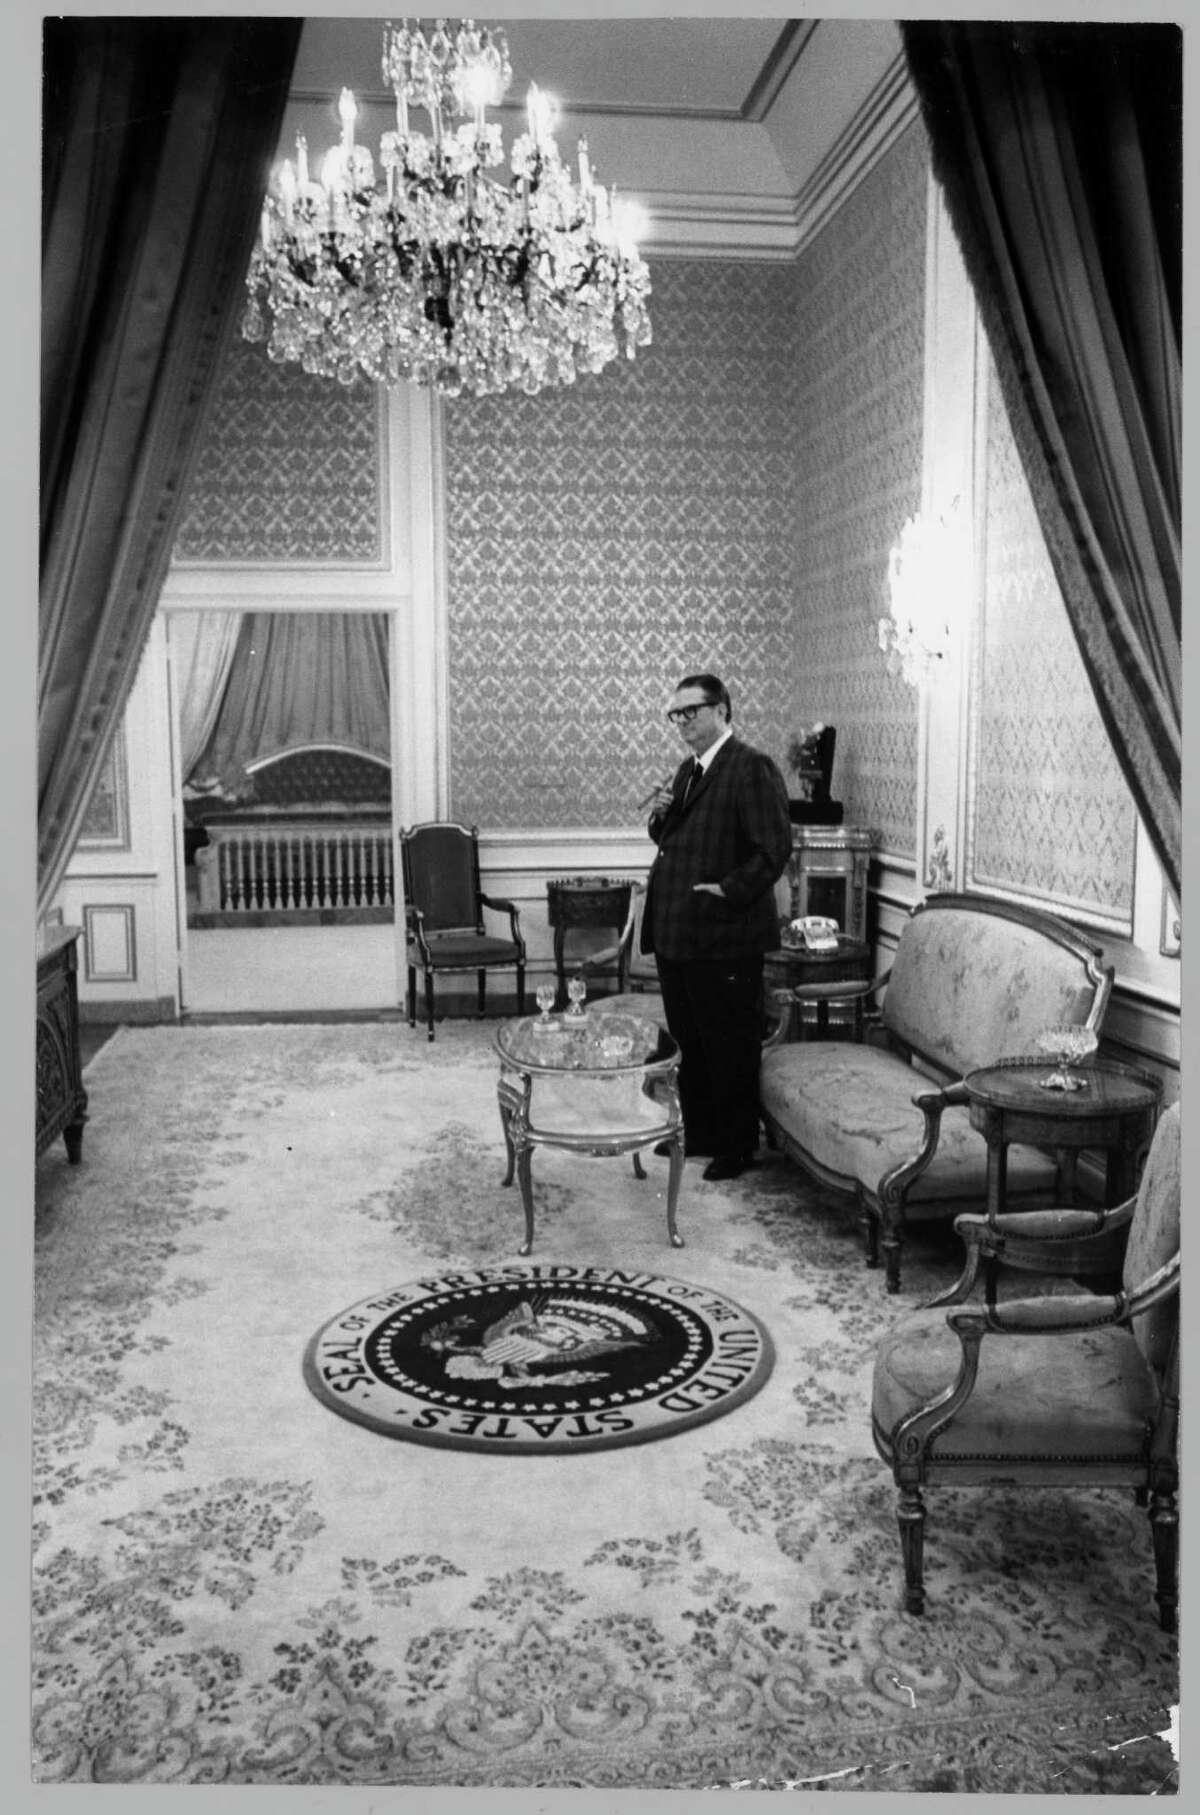 File Photo: 09/29/1968 -- Judge Roy Hofheinz stands in the 20-foot-ceilinged Presidential Suite at the Astrodome. The suite was across the elevator from Hofheinz own living quarters and had a rug bearing the Presidential seal. Baths were trimed in purple velvet and toilet handles were made of gold. The suite, without a view, was built behind the scoreboard for security reasons. Photo: Richard Pipes / Houston Chronicle